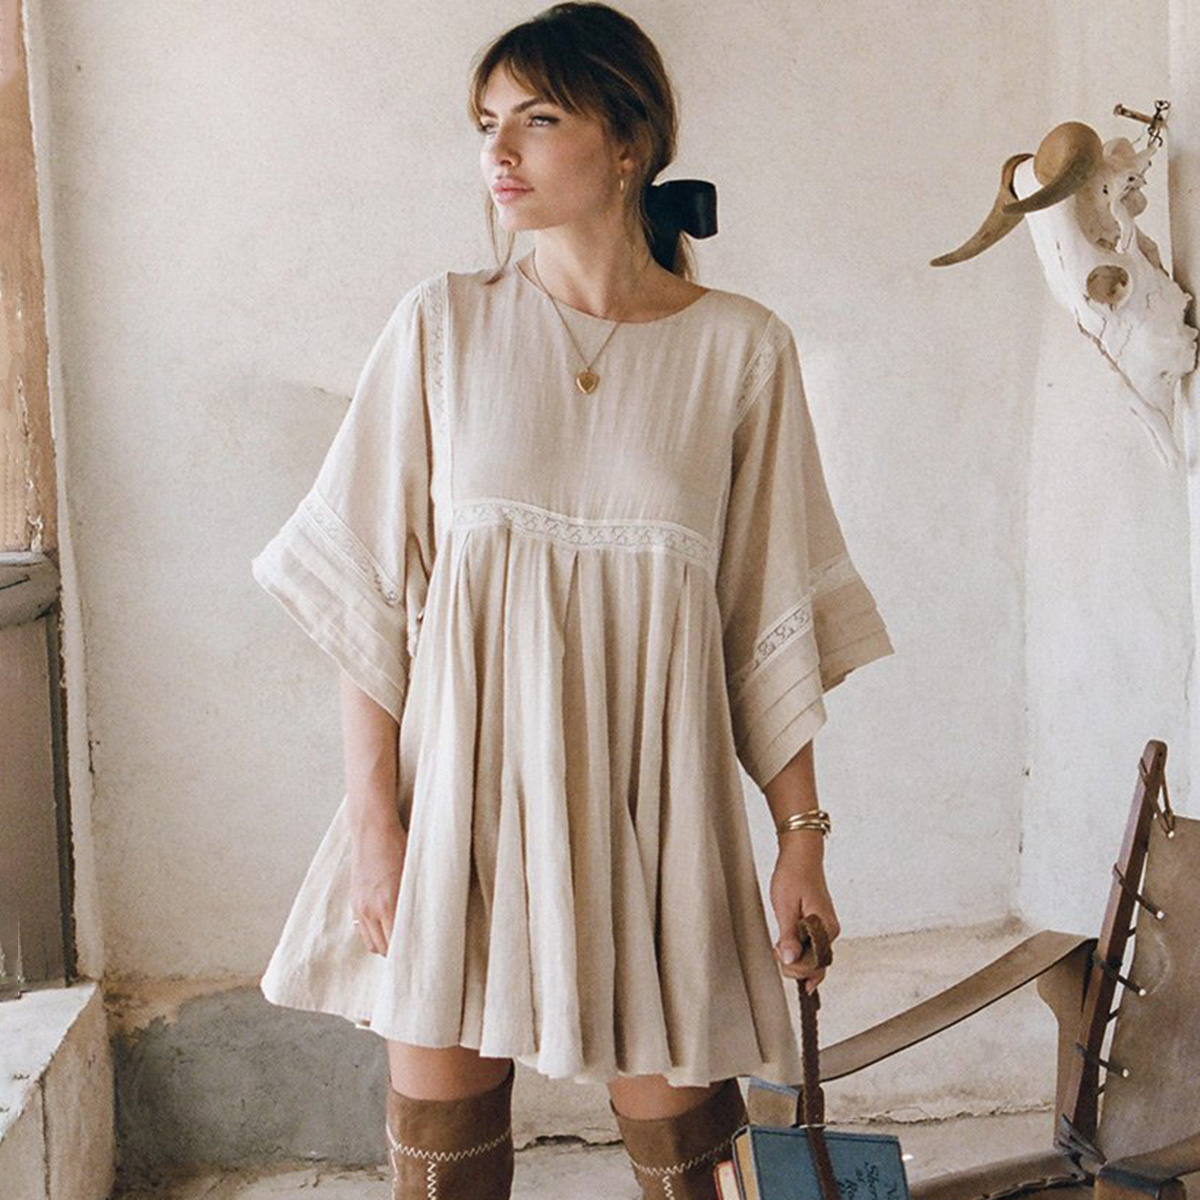 Retro Paloma Mini Dress Women 208 Summer Autumn 3/4 Sleeve O neck Lace Trim Short Dress Ladies Casual Loose Boho Hippie Dresses